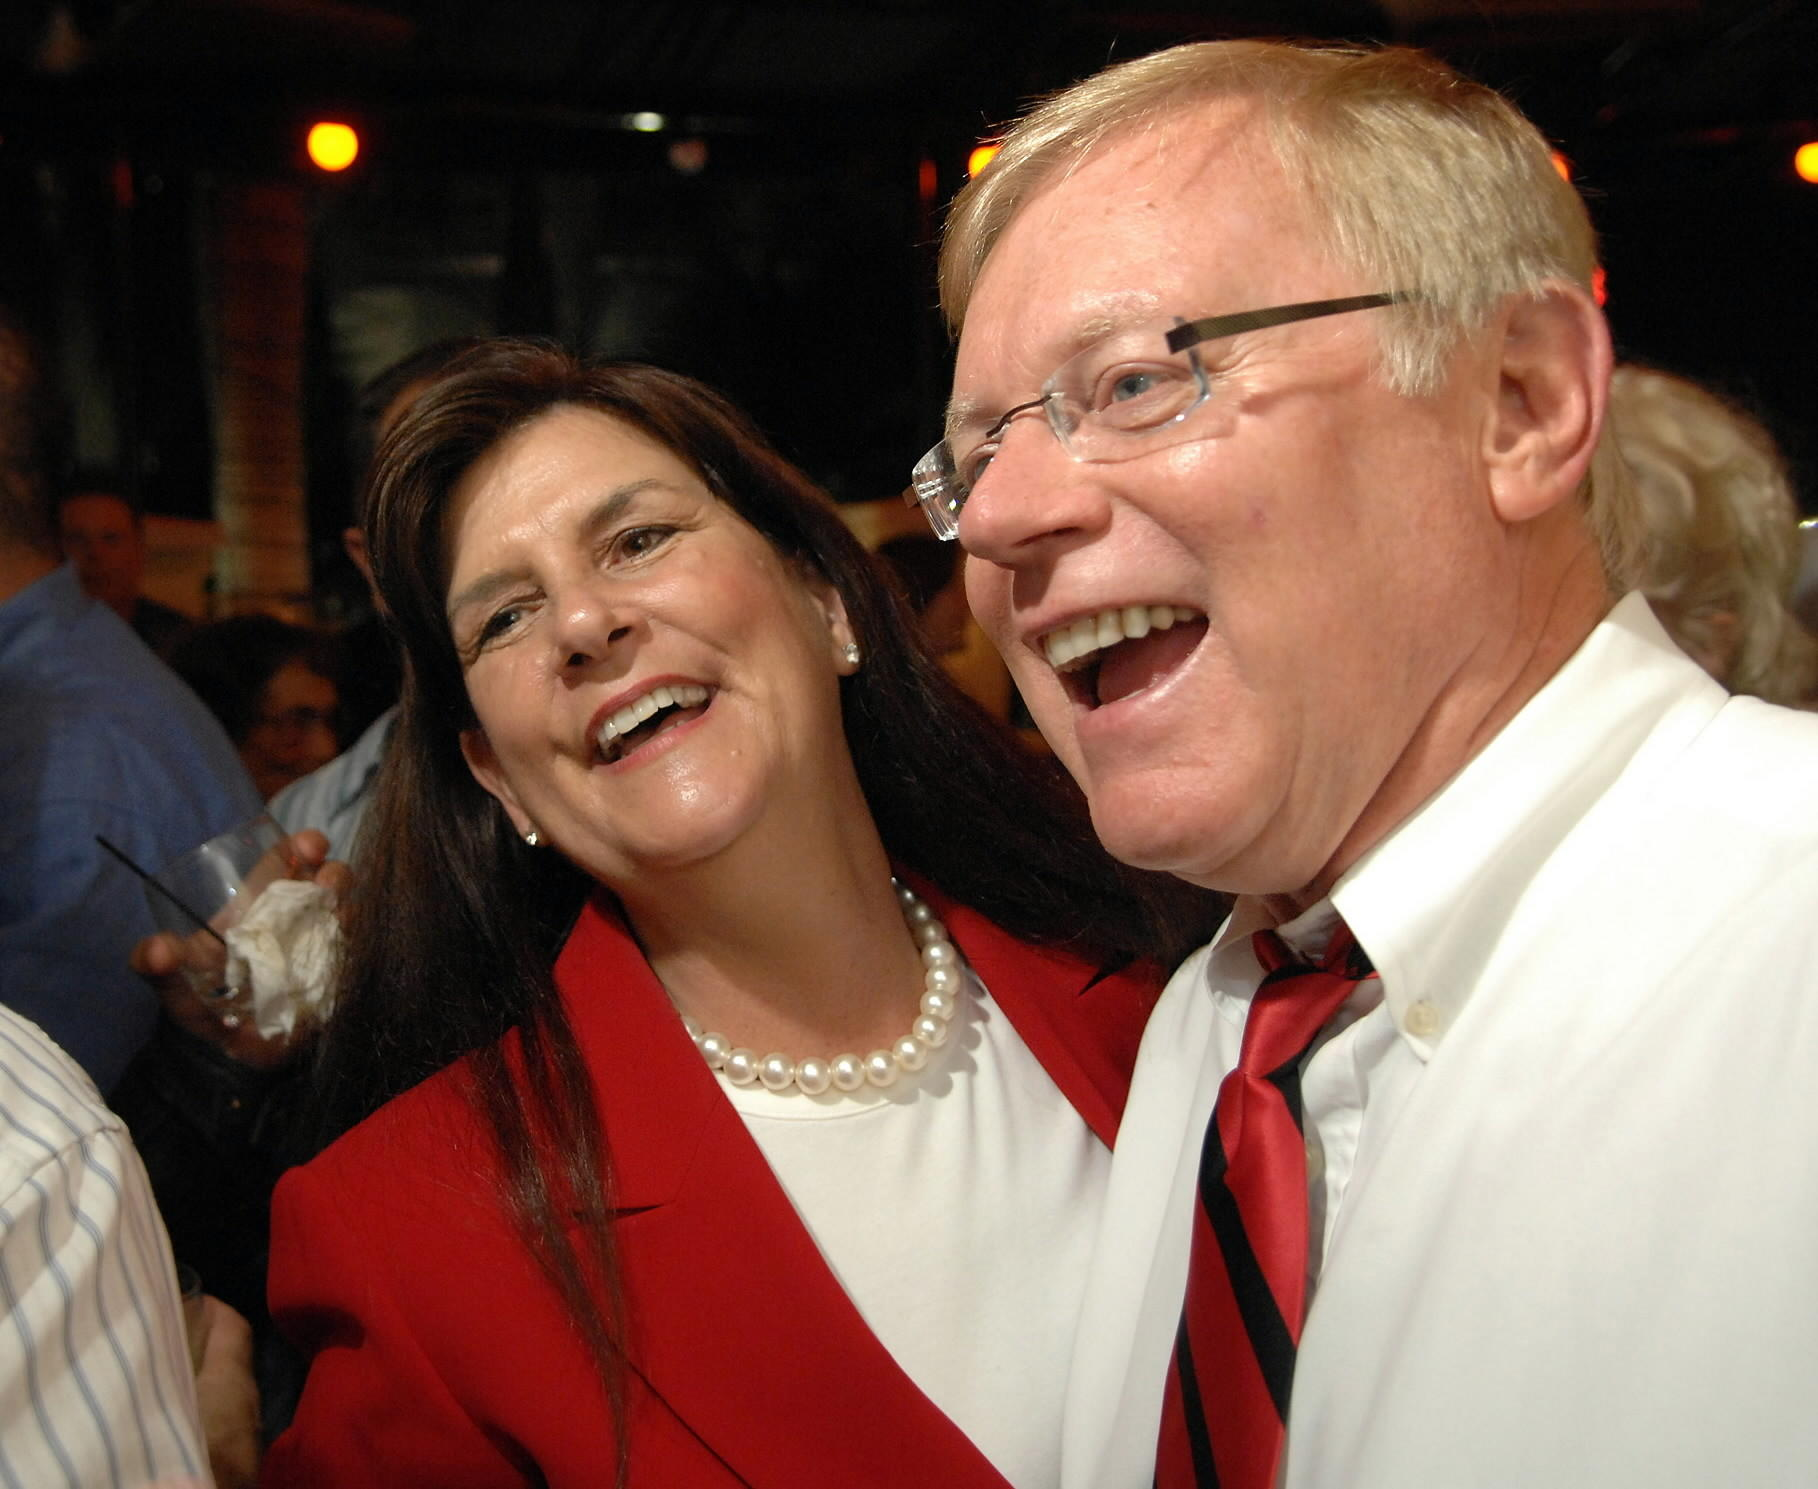 Reported net worth: $6.6 Million Susan Haynie (left) and then Boca Raton City Councilman Bill Hager (right) celebrate Haynie's win in the Boca Raton City Council - Seat A election.